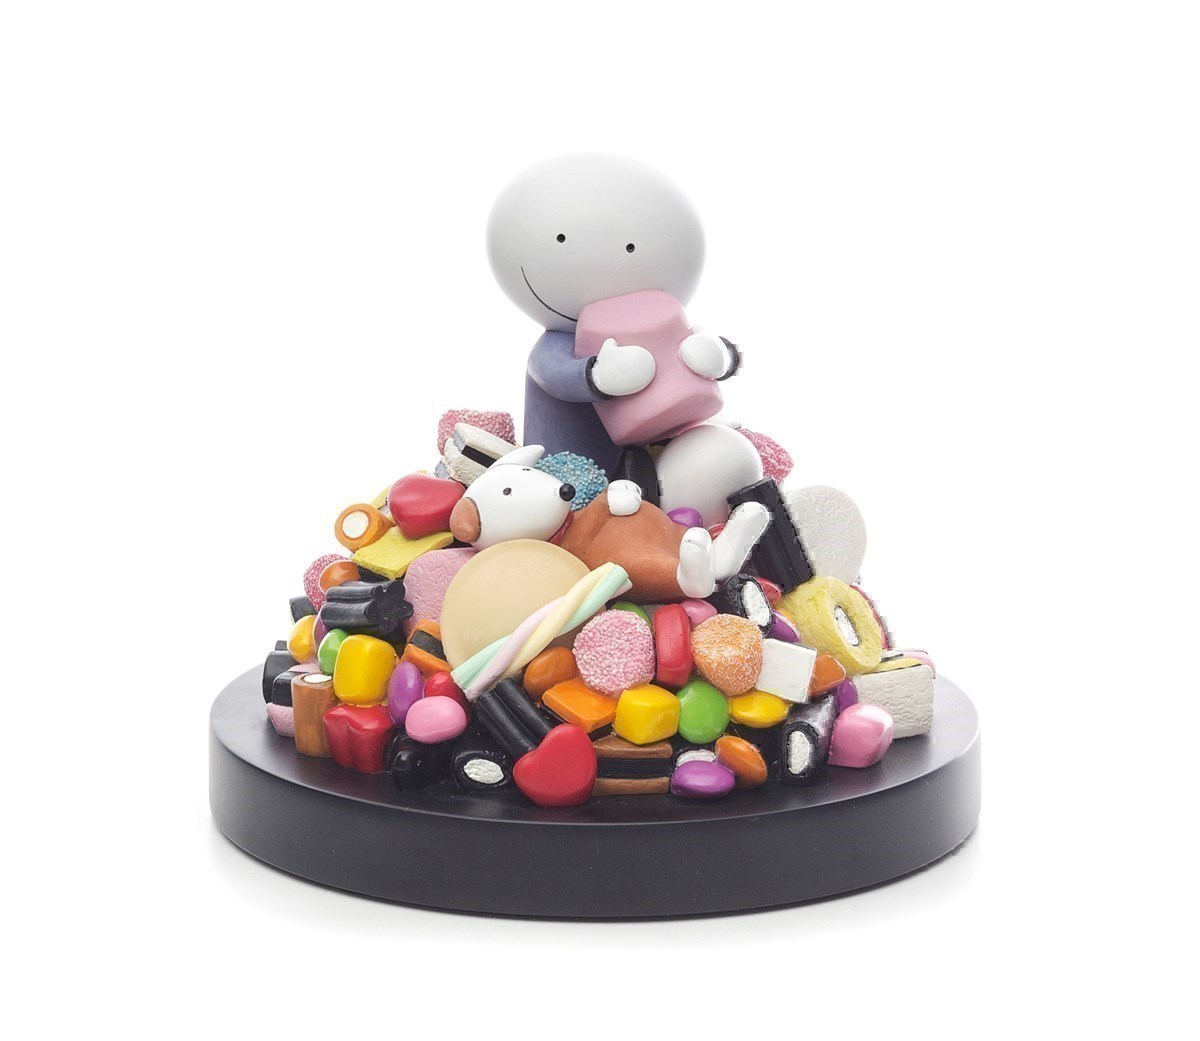 Life is Sweet by Doug Hyde - Cold Cast Porcelain sized 7x6 inches. Available from Whitewall Galleries